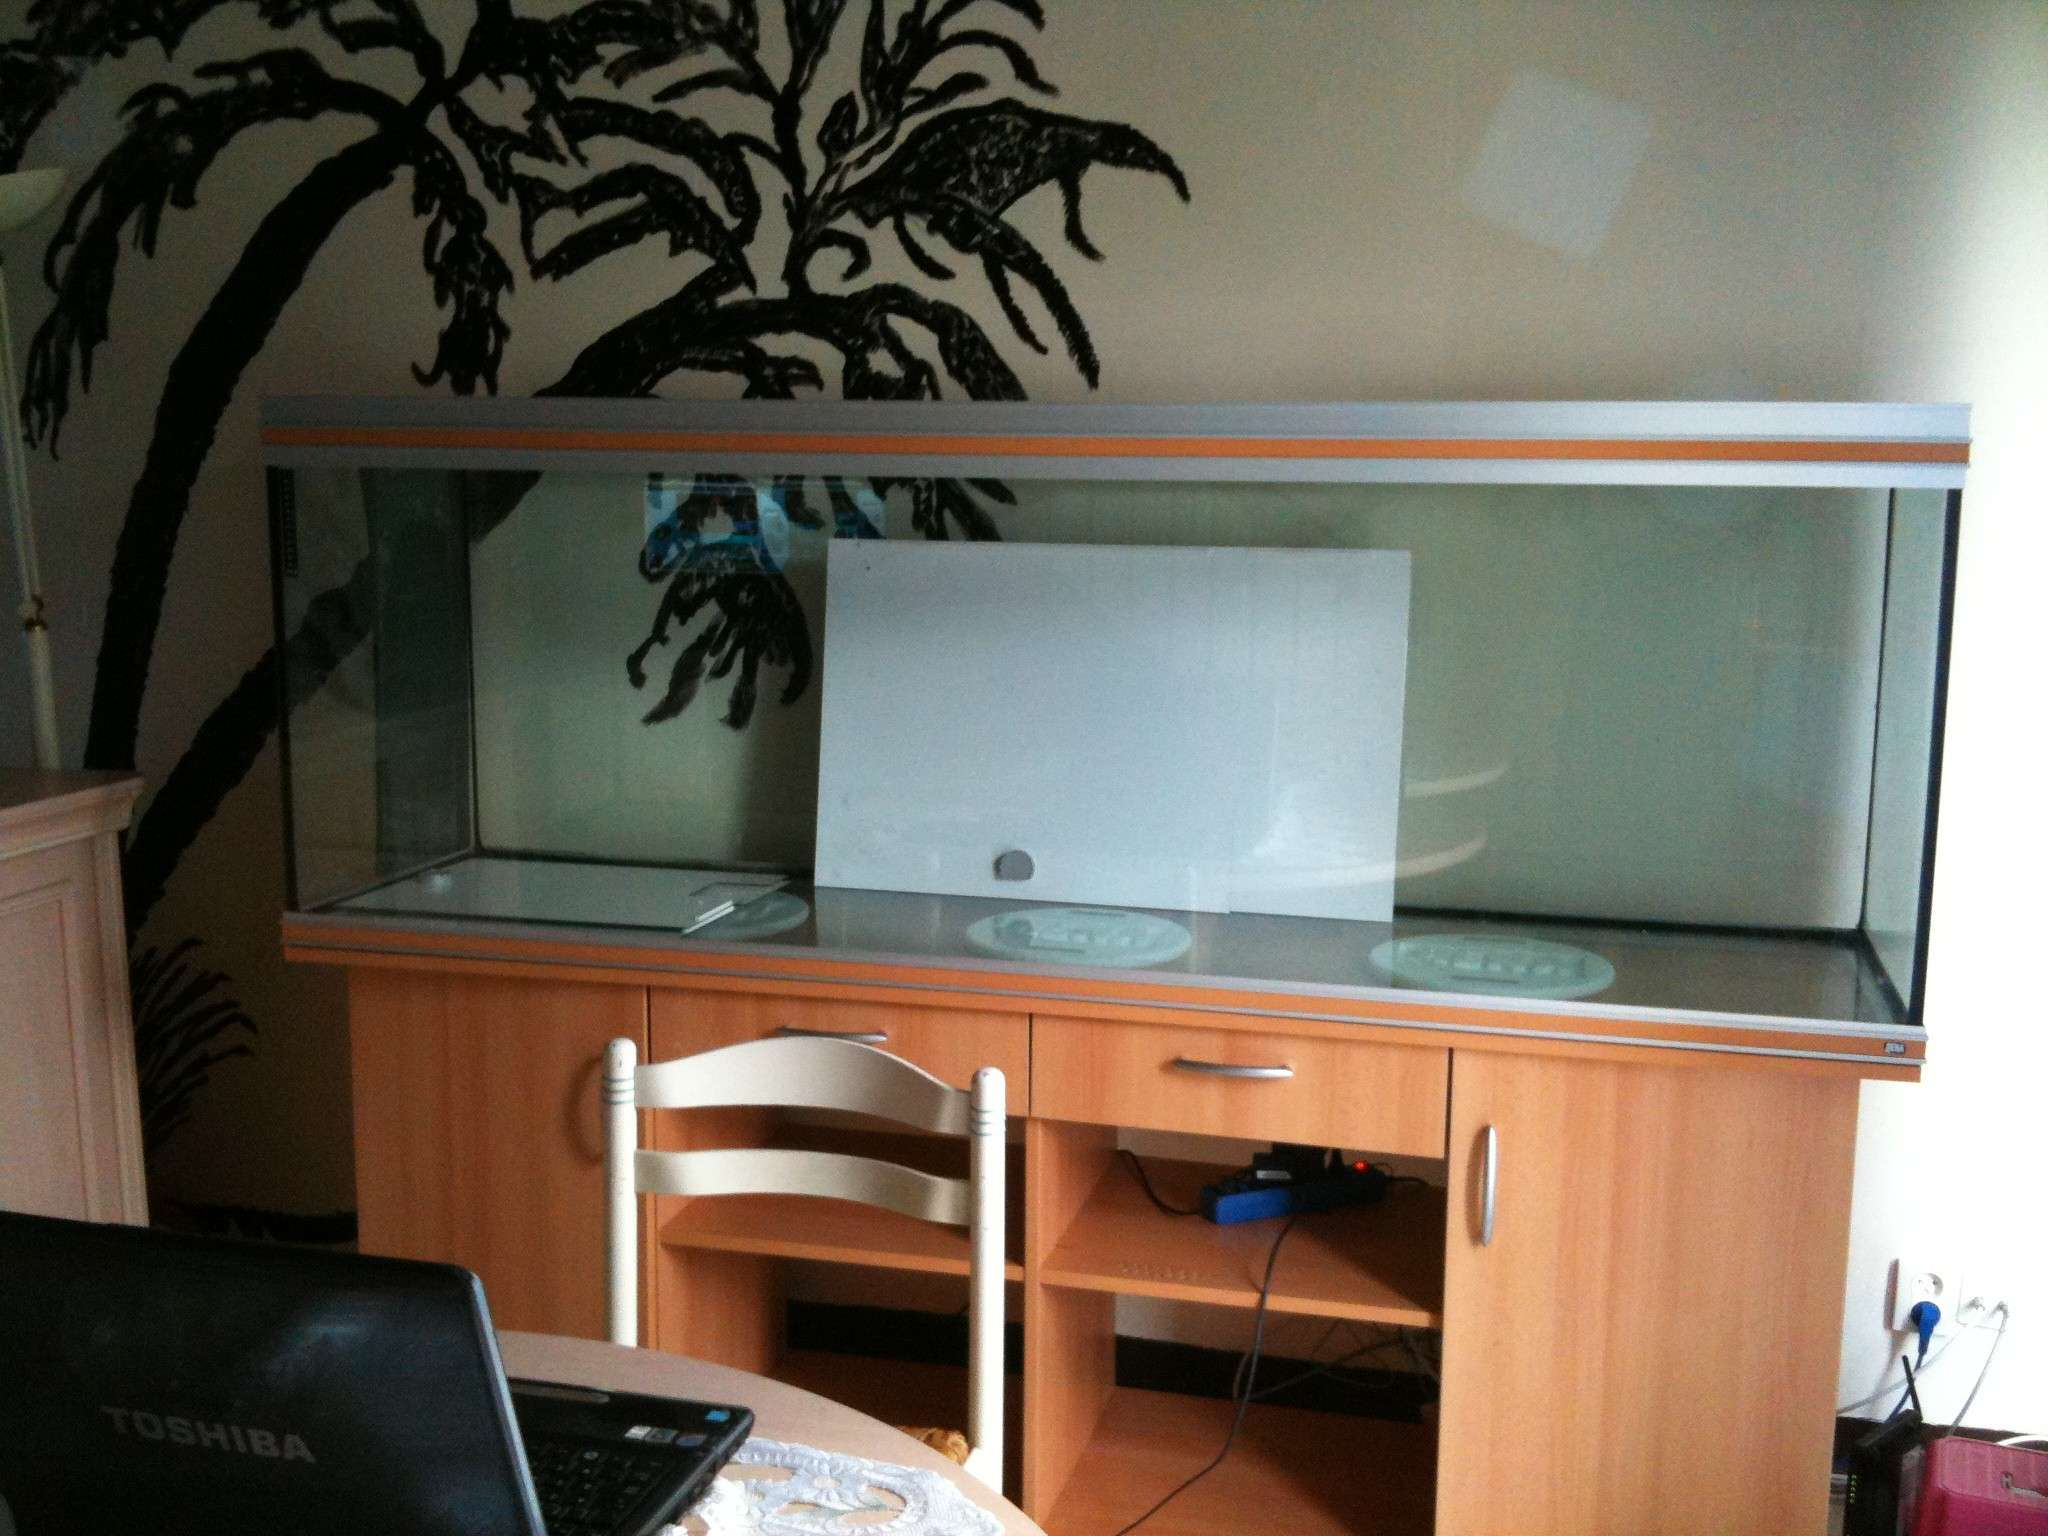 Bac 650 L future biotope amazonien Img_0518